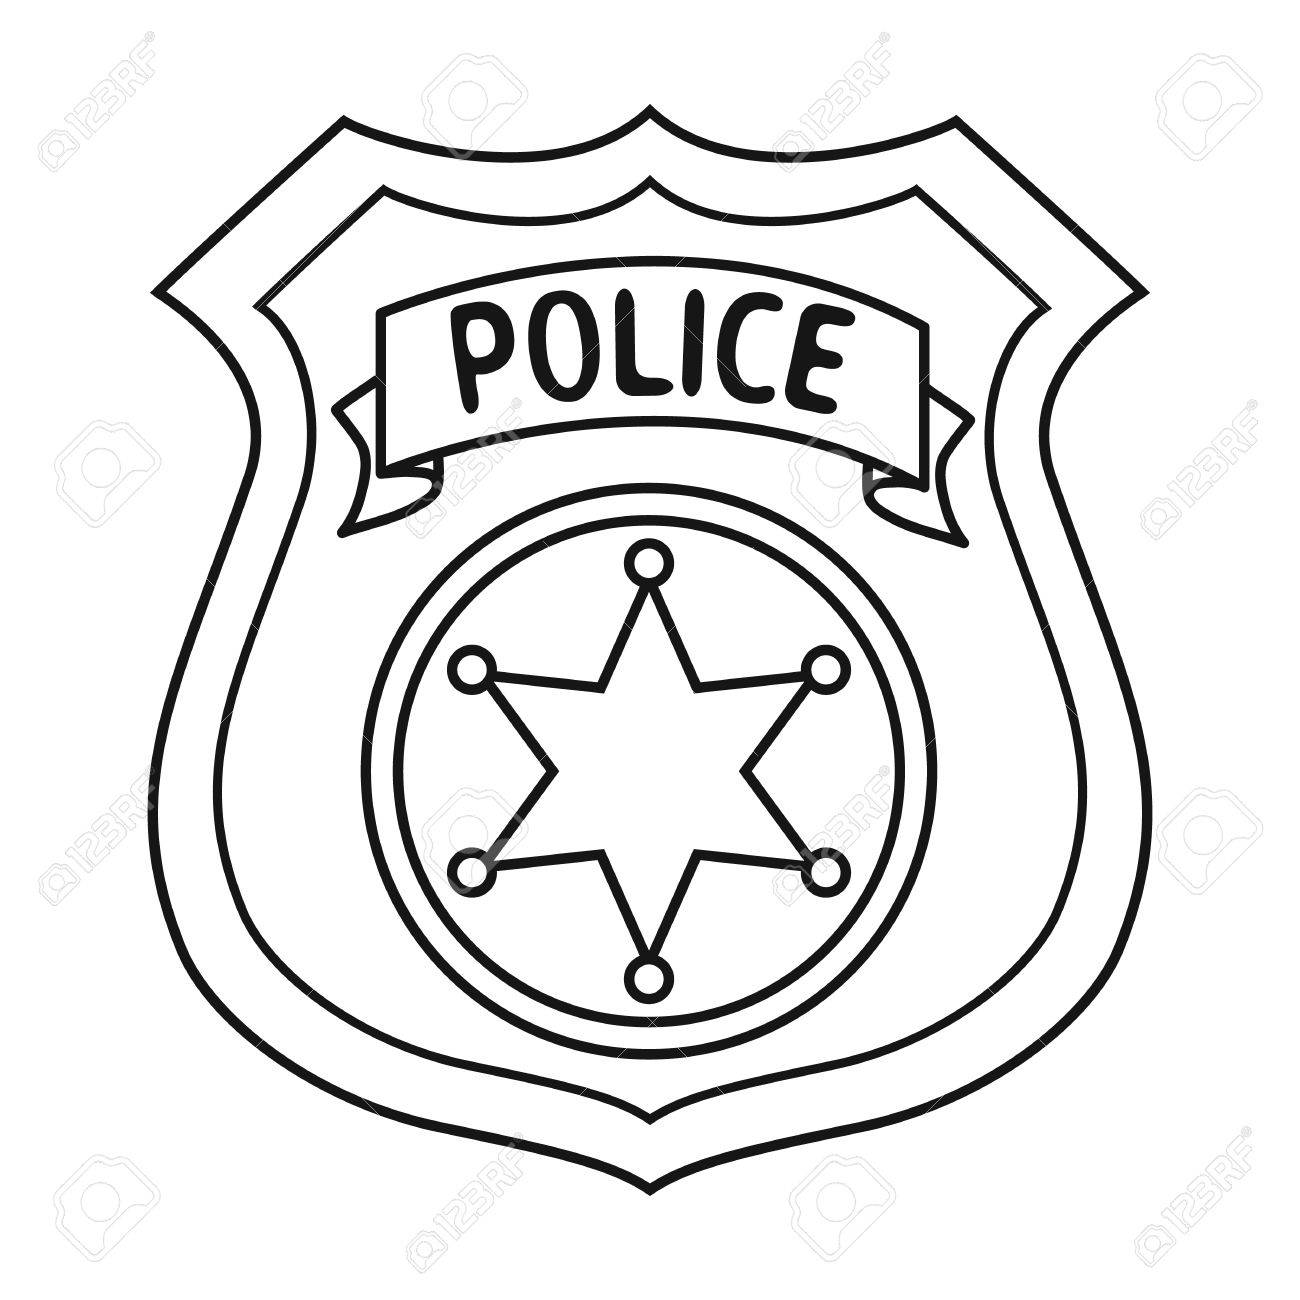 1300x1300 Sheriff Badge Gallery For Police Badge Vector Clip Art. Police